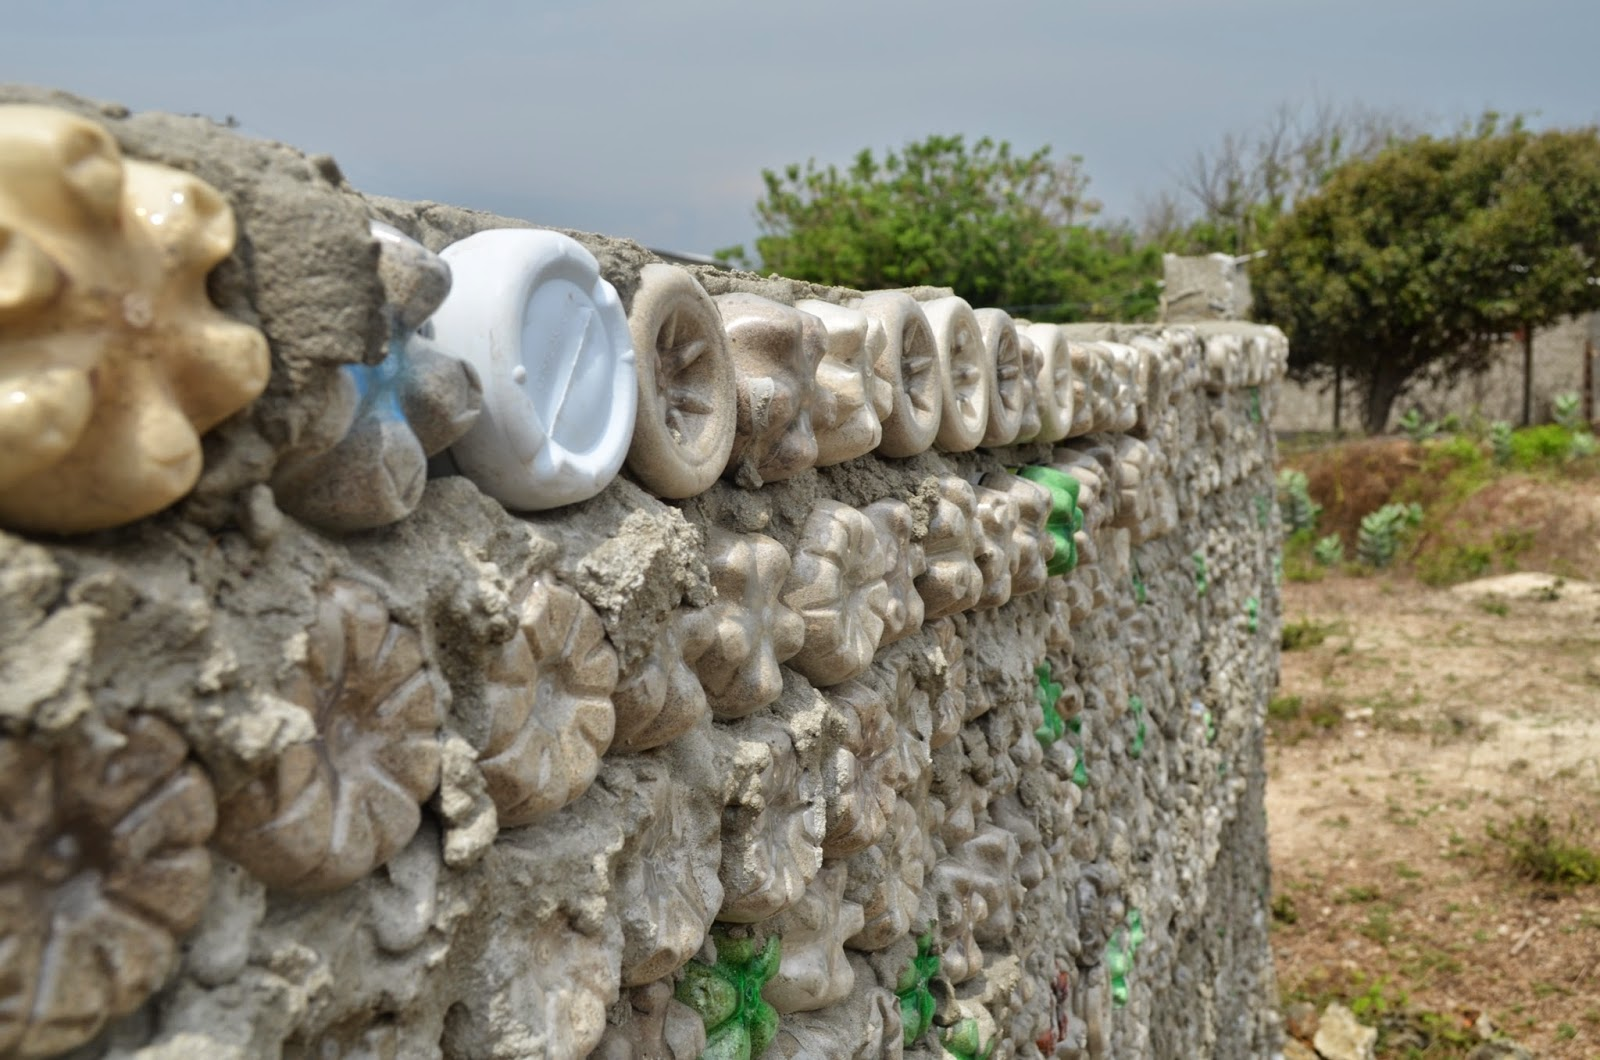 This world of water how to recycle plastic bottles the for Building with recycled plastic